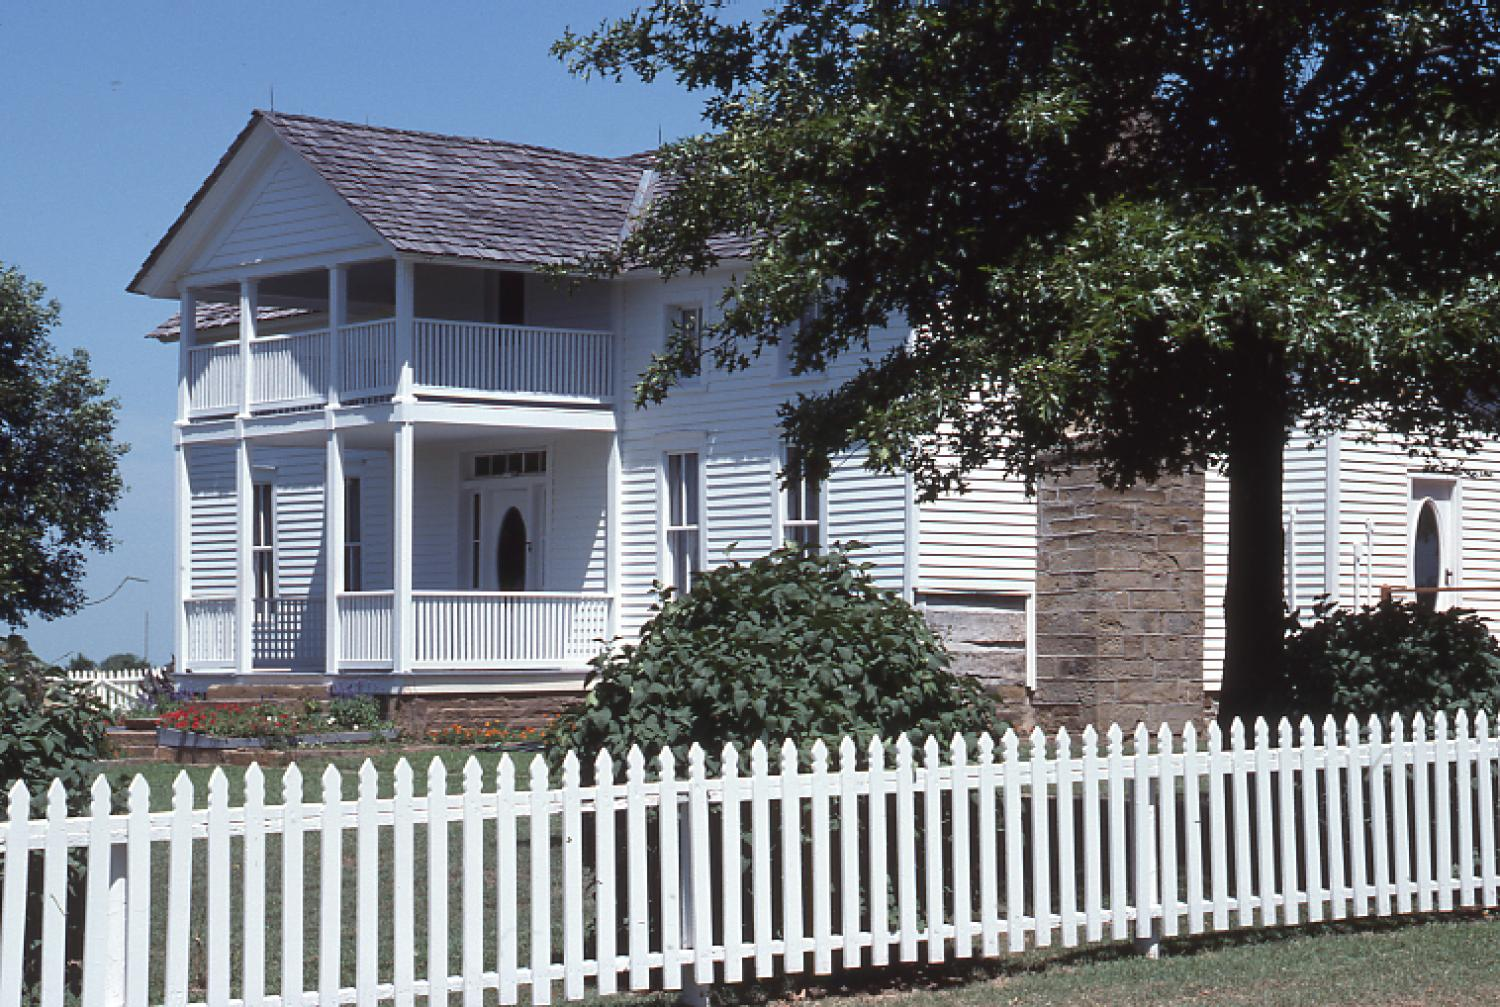 Will Rogers' Birthplace                                                                                                      [Sequence #]: 1 of 1